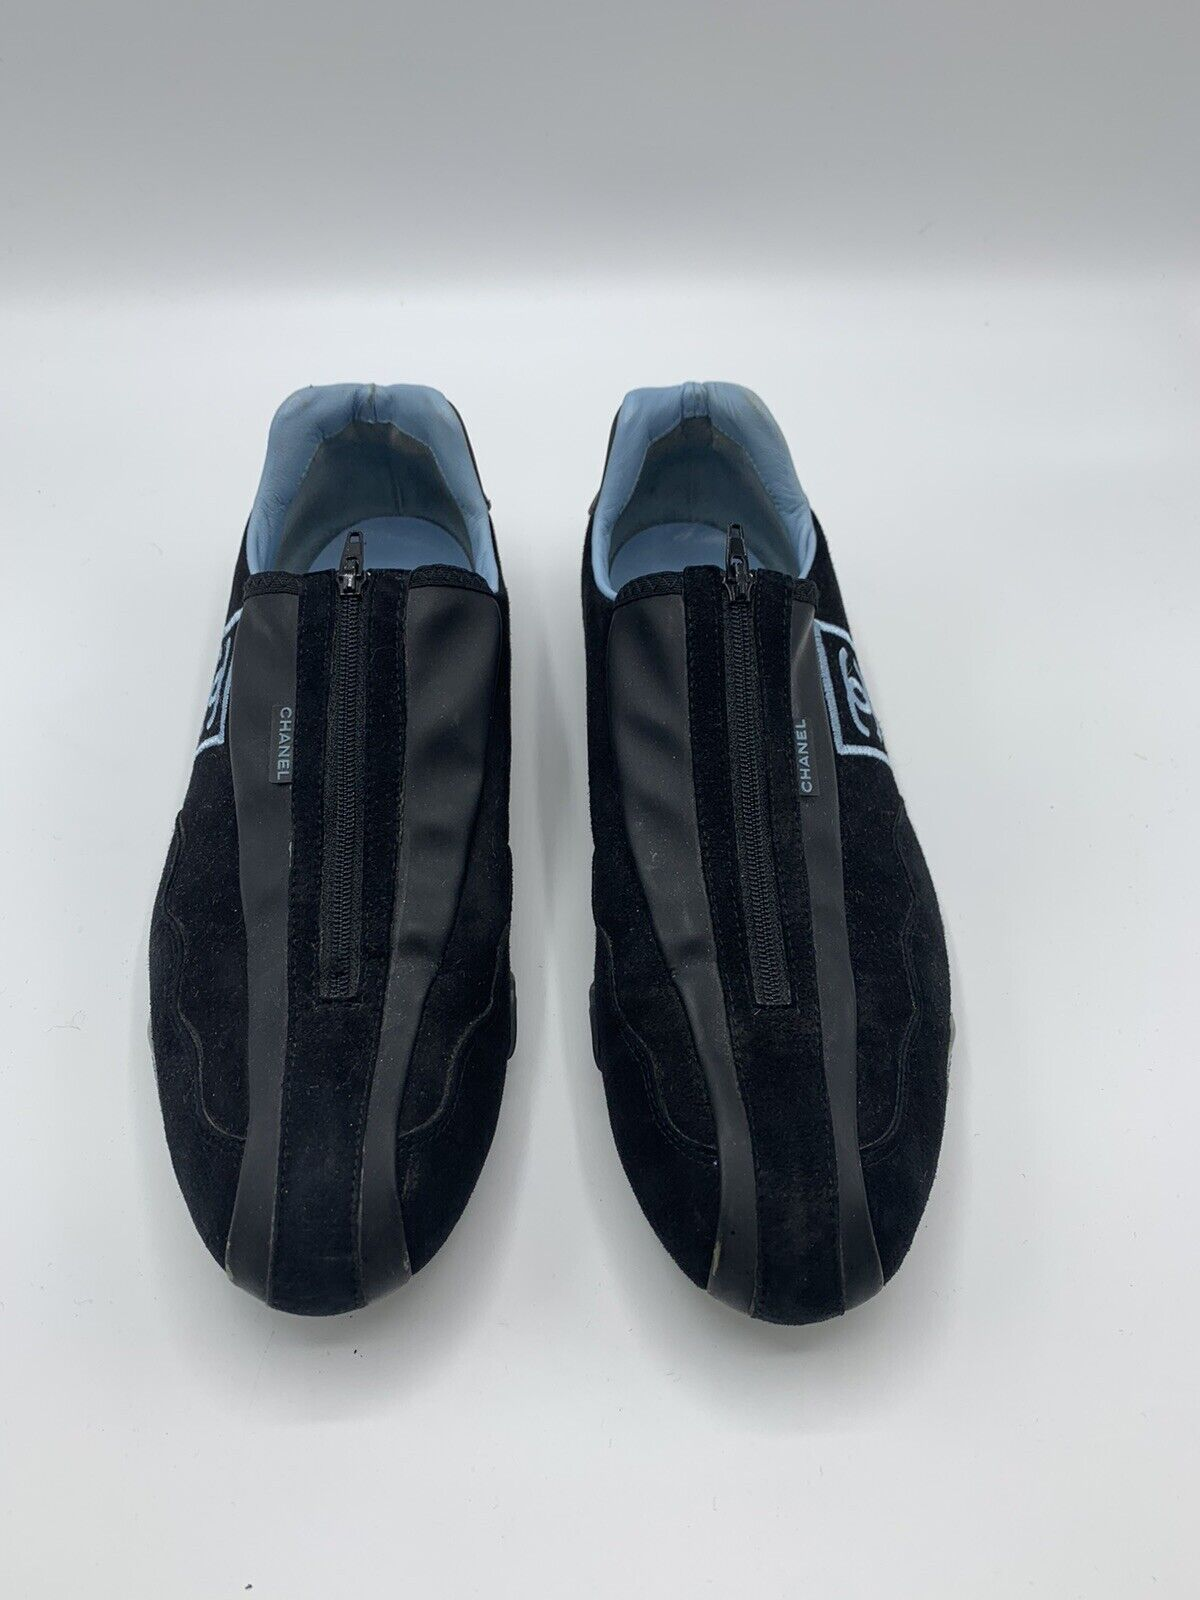 Chanel Sneakers - image 12